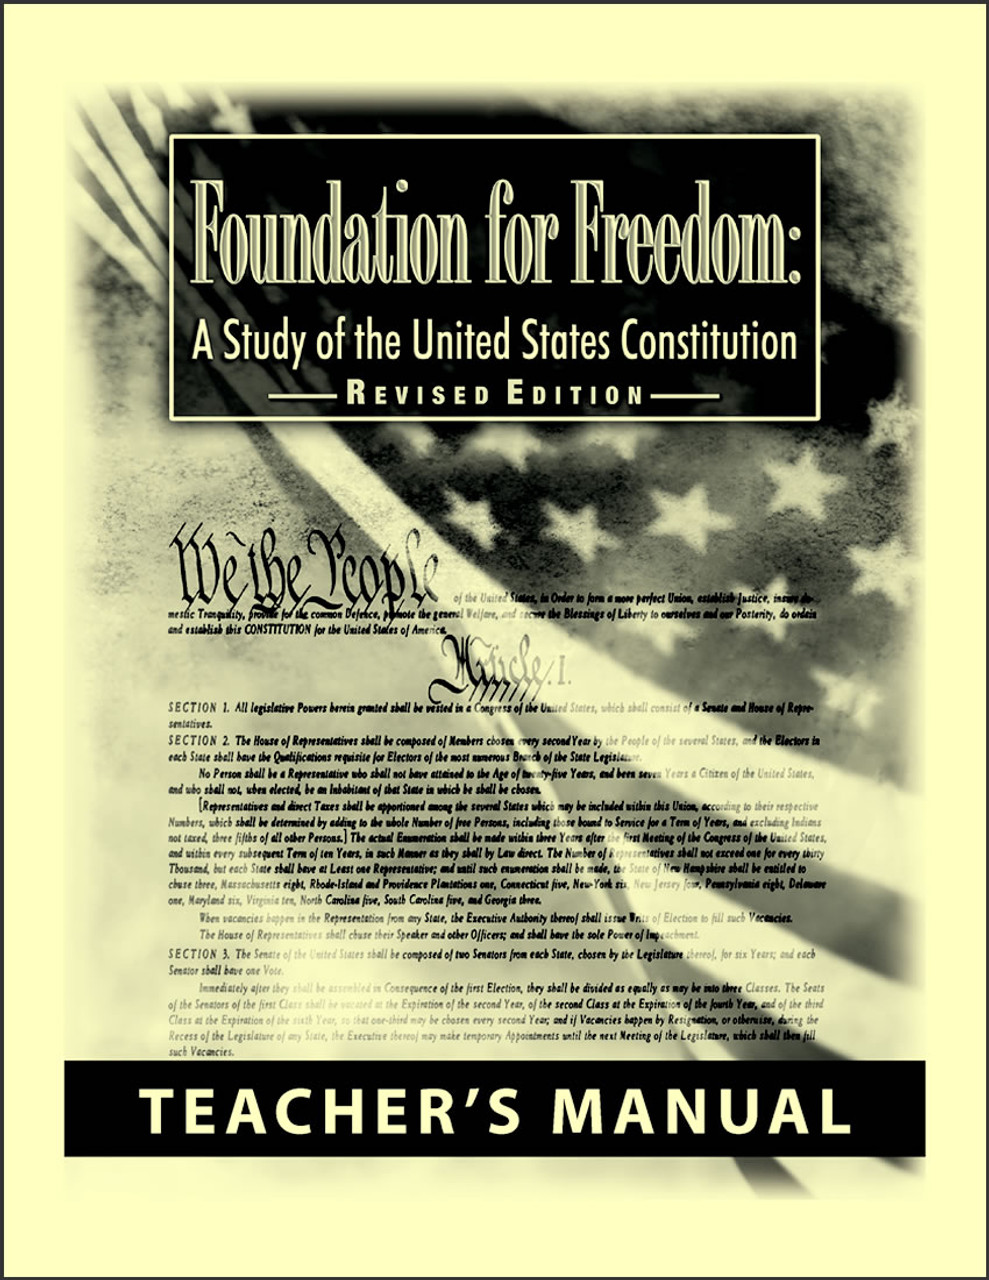 Foundation for Freedom: A Study of the United States Constitution, Revised edition - Teacher's Manual